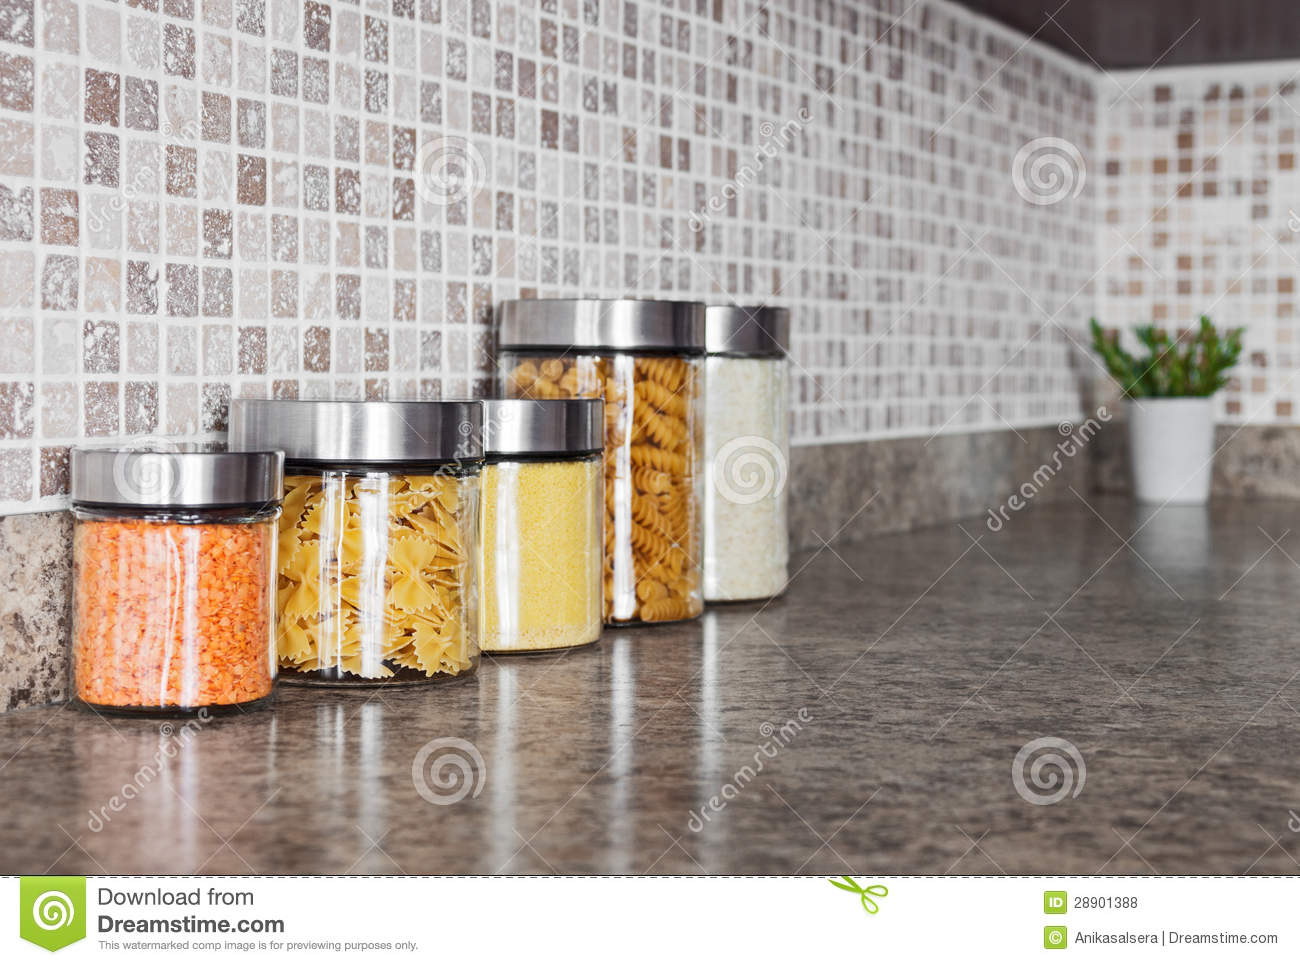 Food ingredients in glass jars